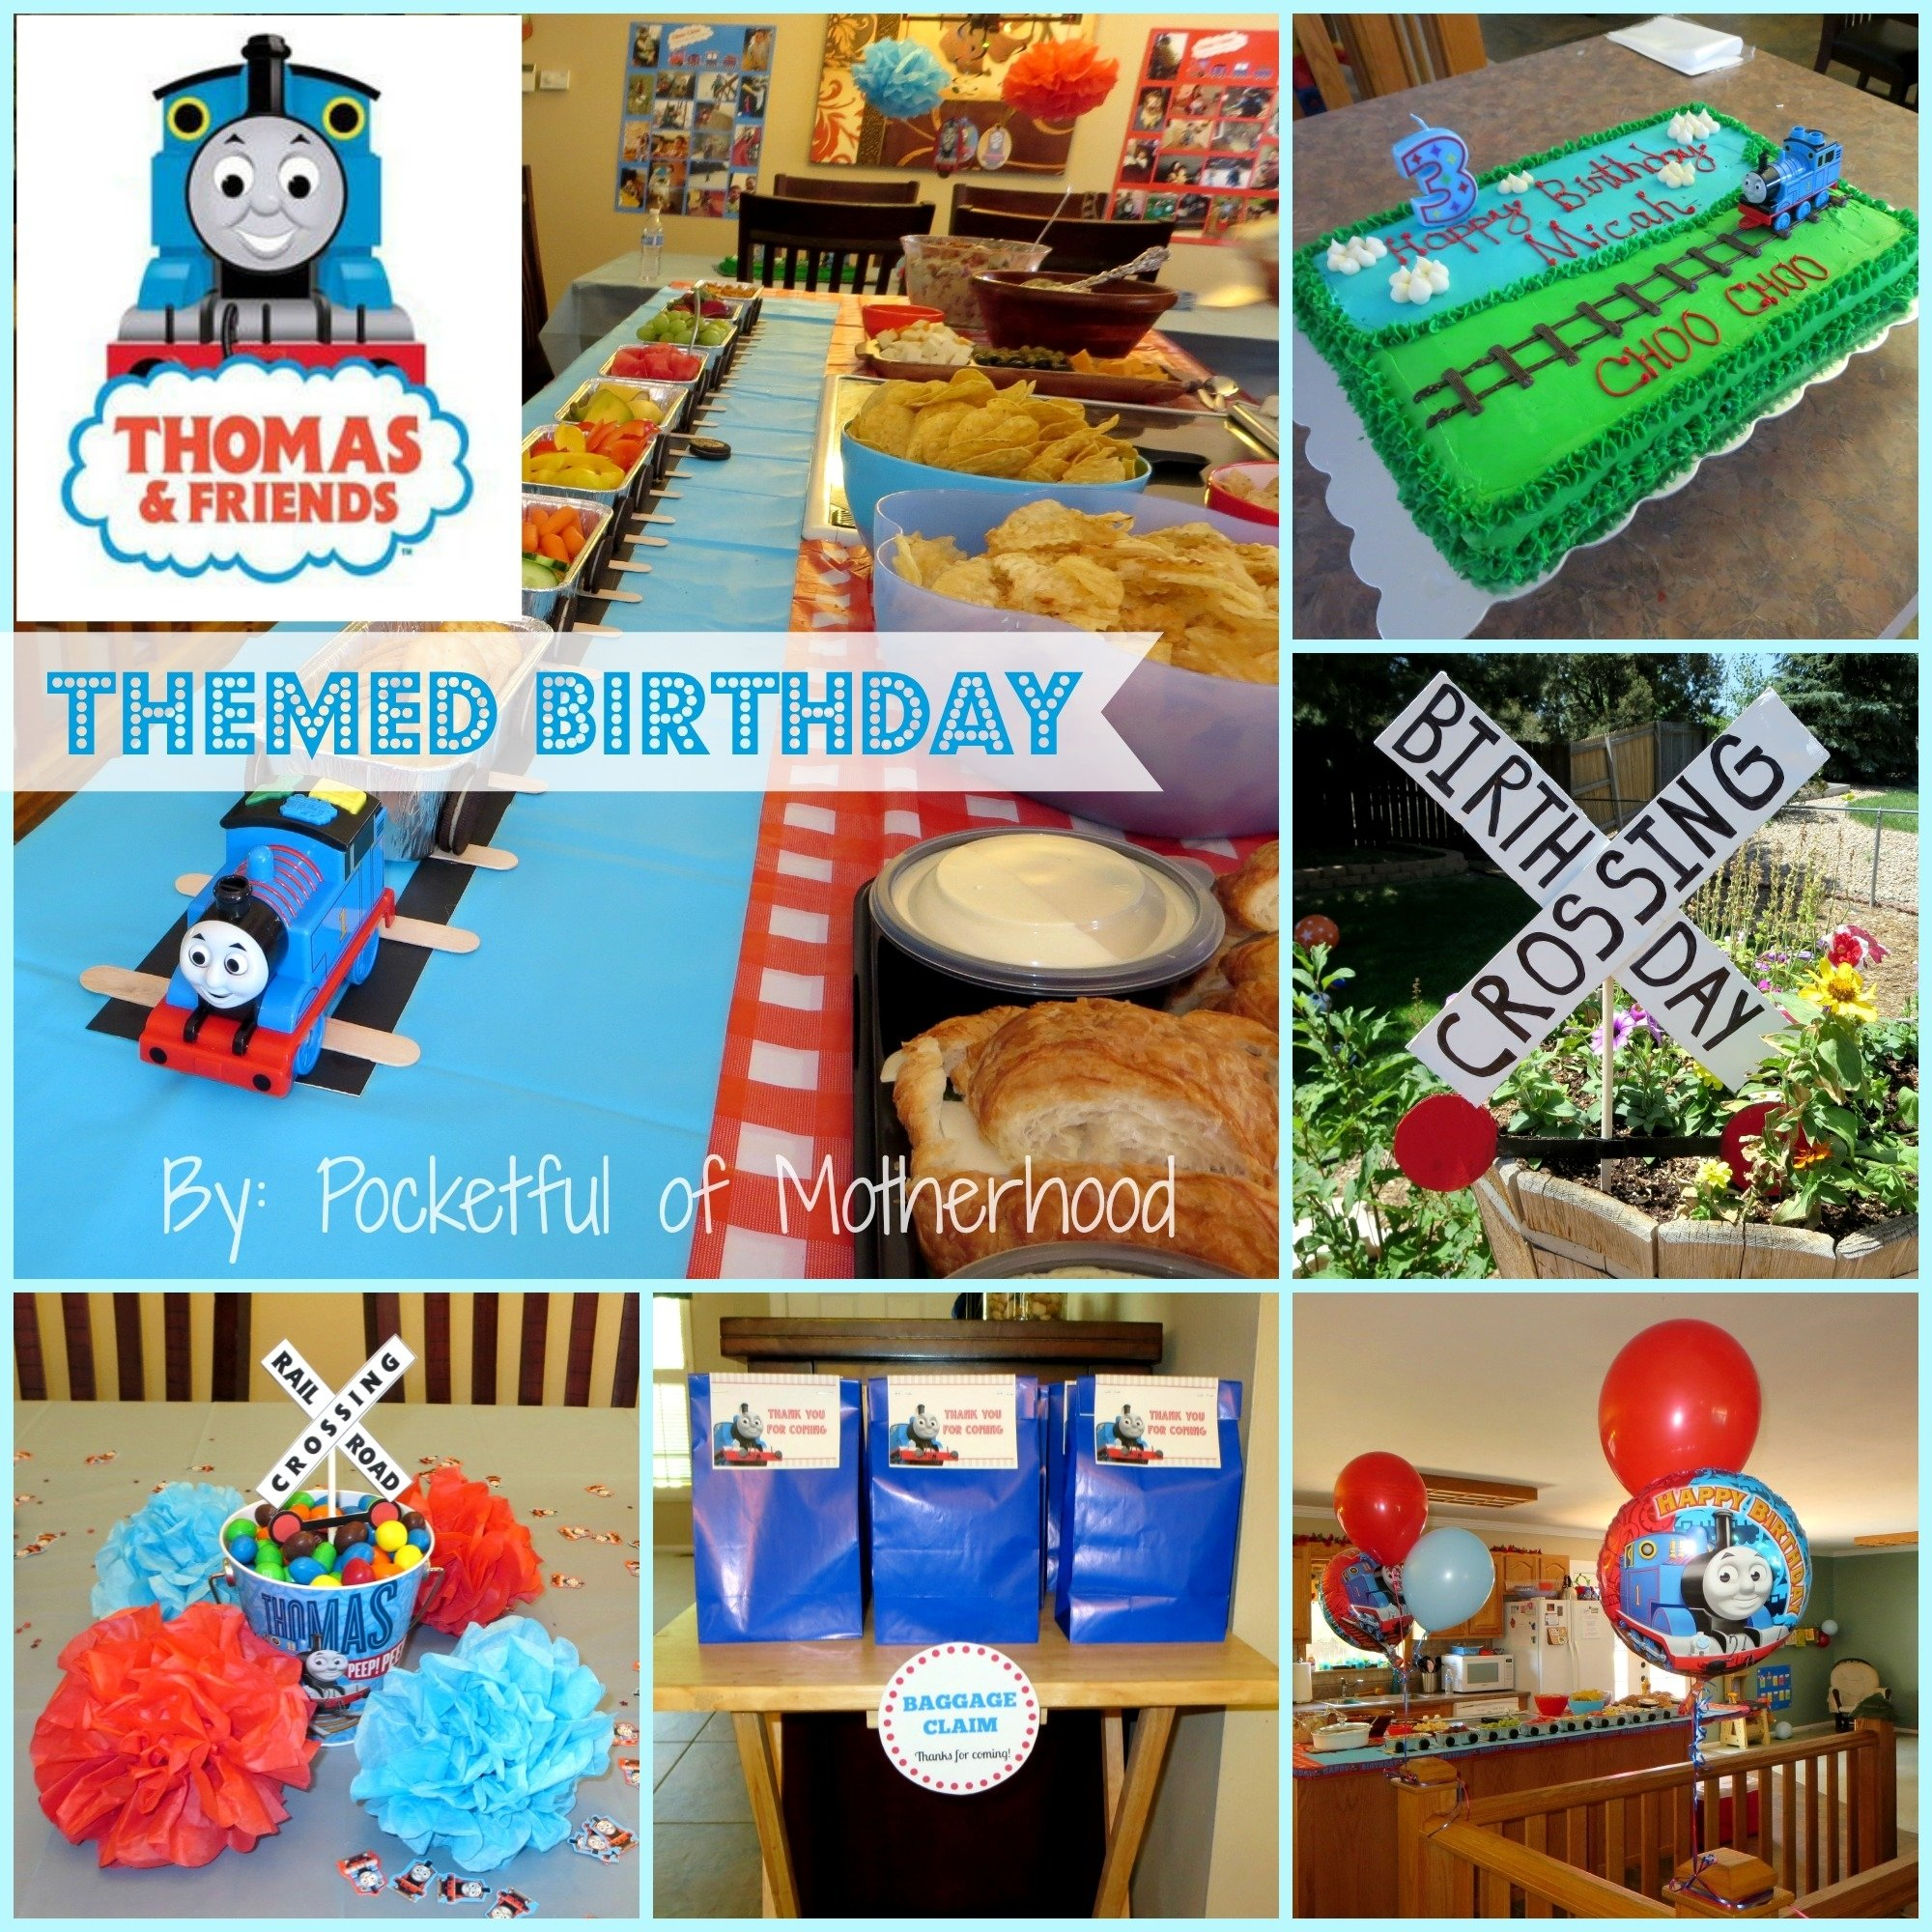 10 Most Recommended Thomas And Friends Birthday Party Ideas thomas and friends themed birthday party pocketful of motherhood 2 2020